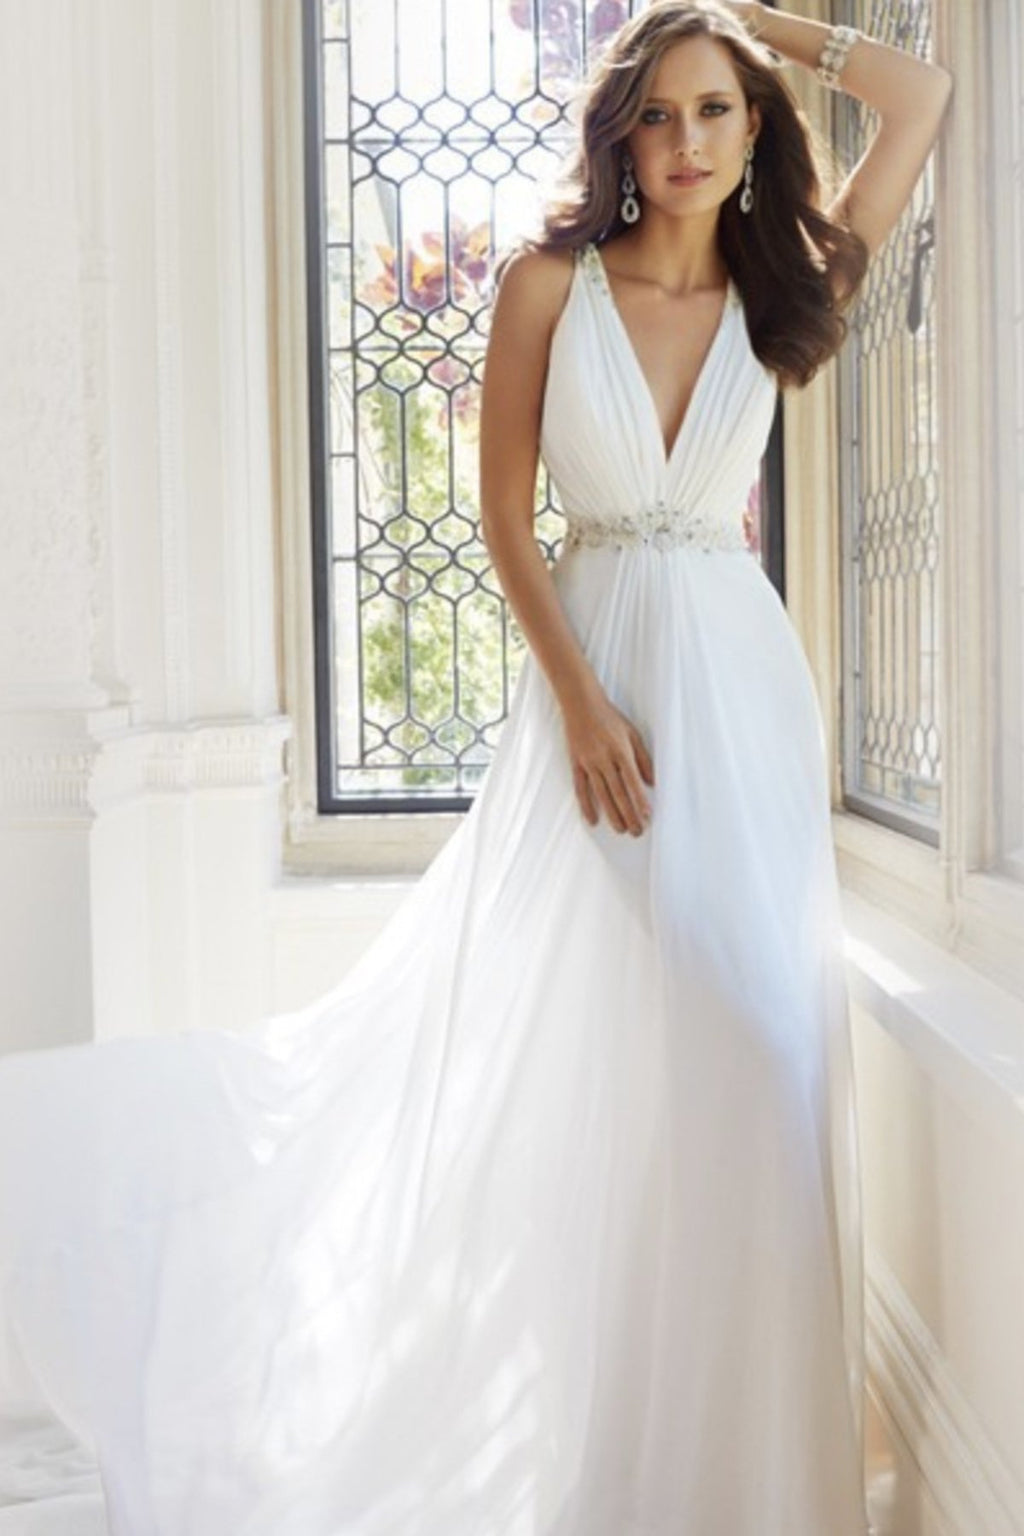 Sweep Train Deep V-Neck Back See-Through Wedding Dress Wedding Dress US2 White